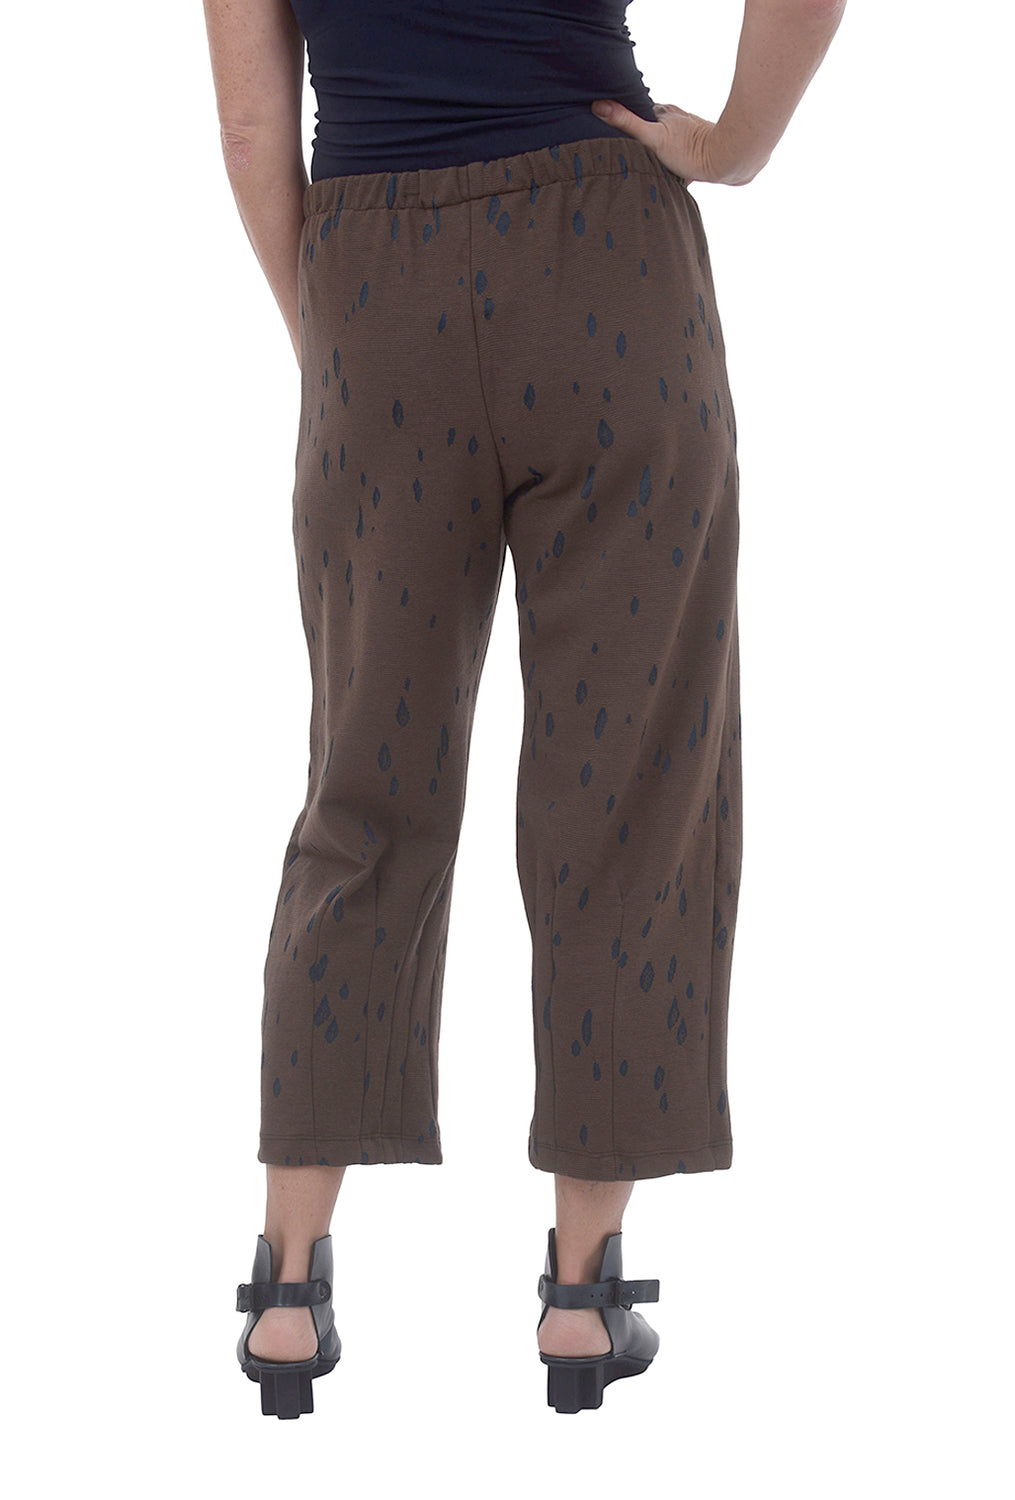 Gershon Bram Goldie Knit Pants, Brown